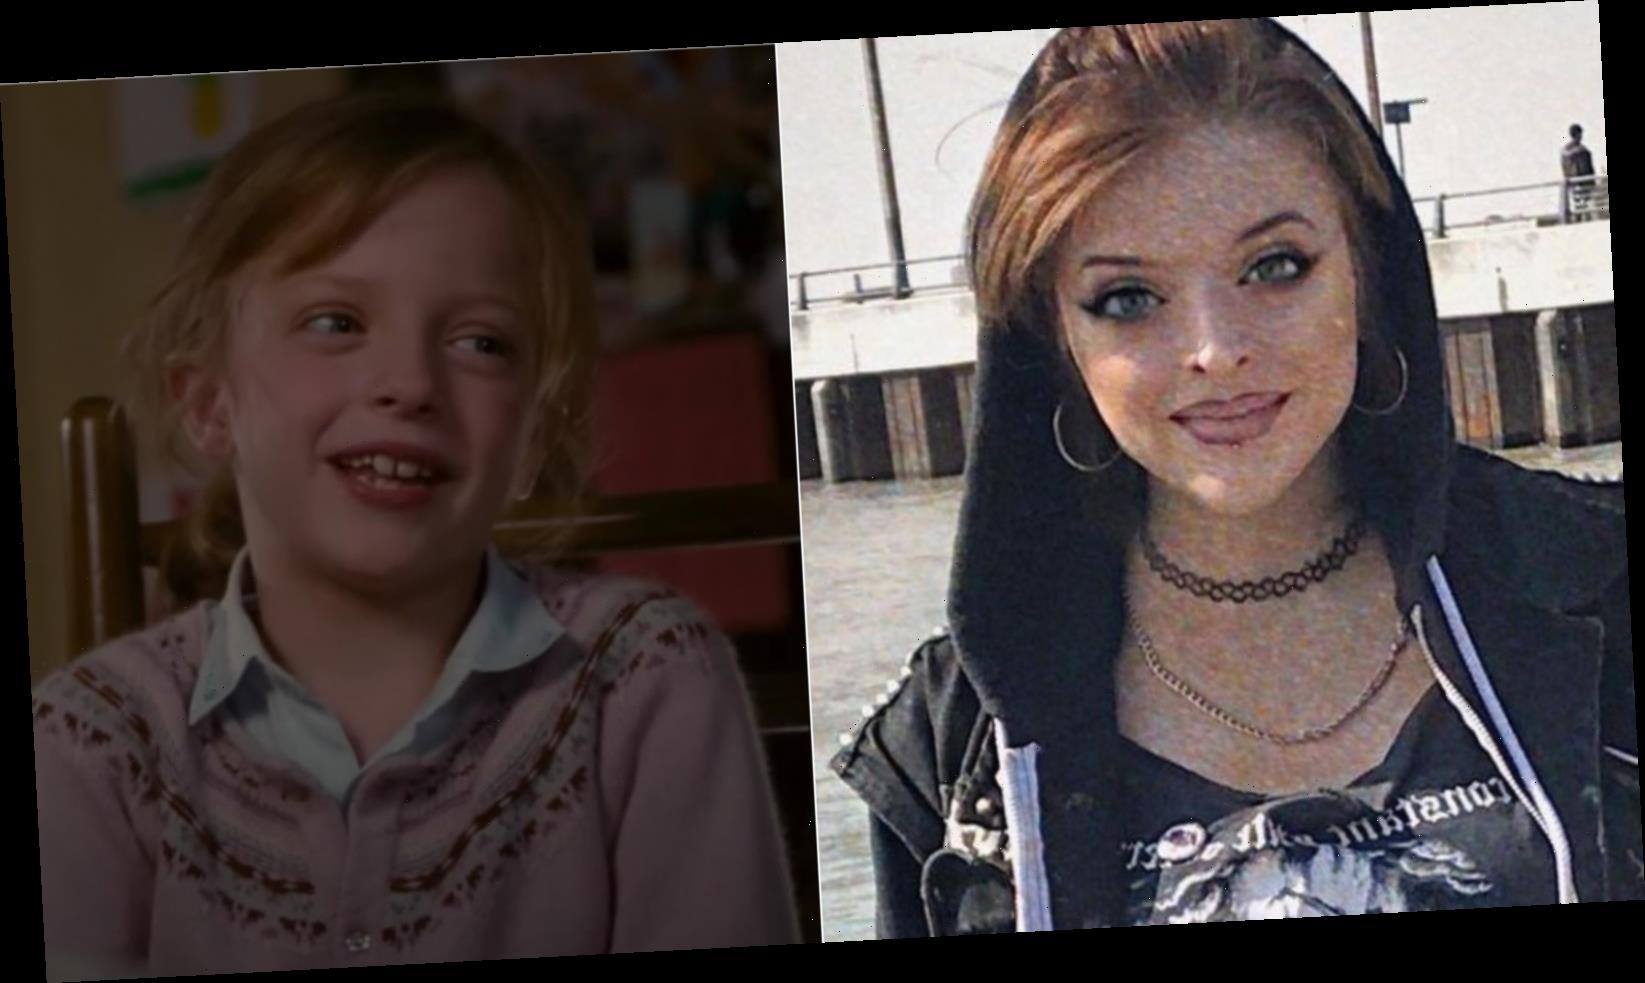 The Little Girl From The Holiday Is All Grown Up